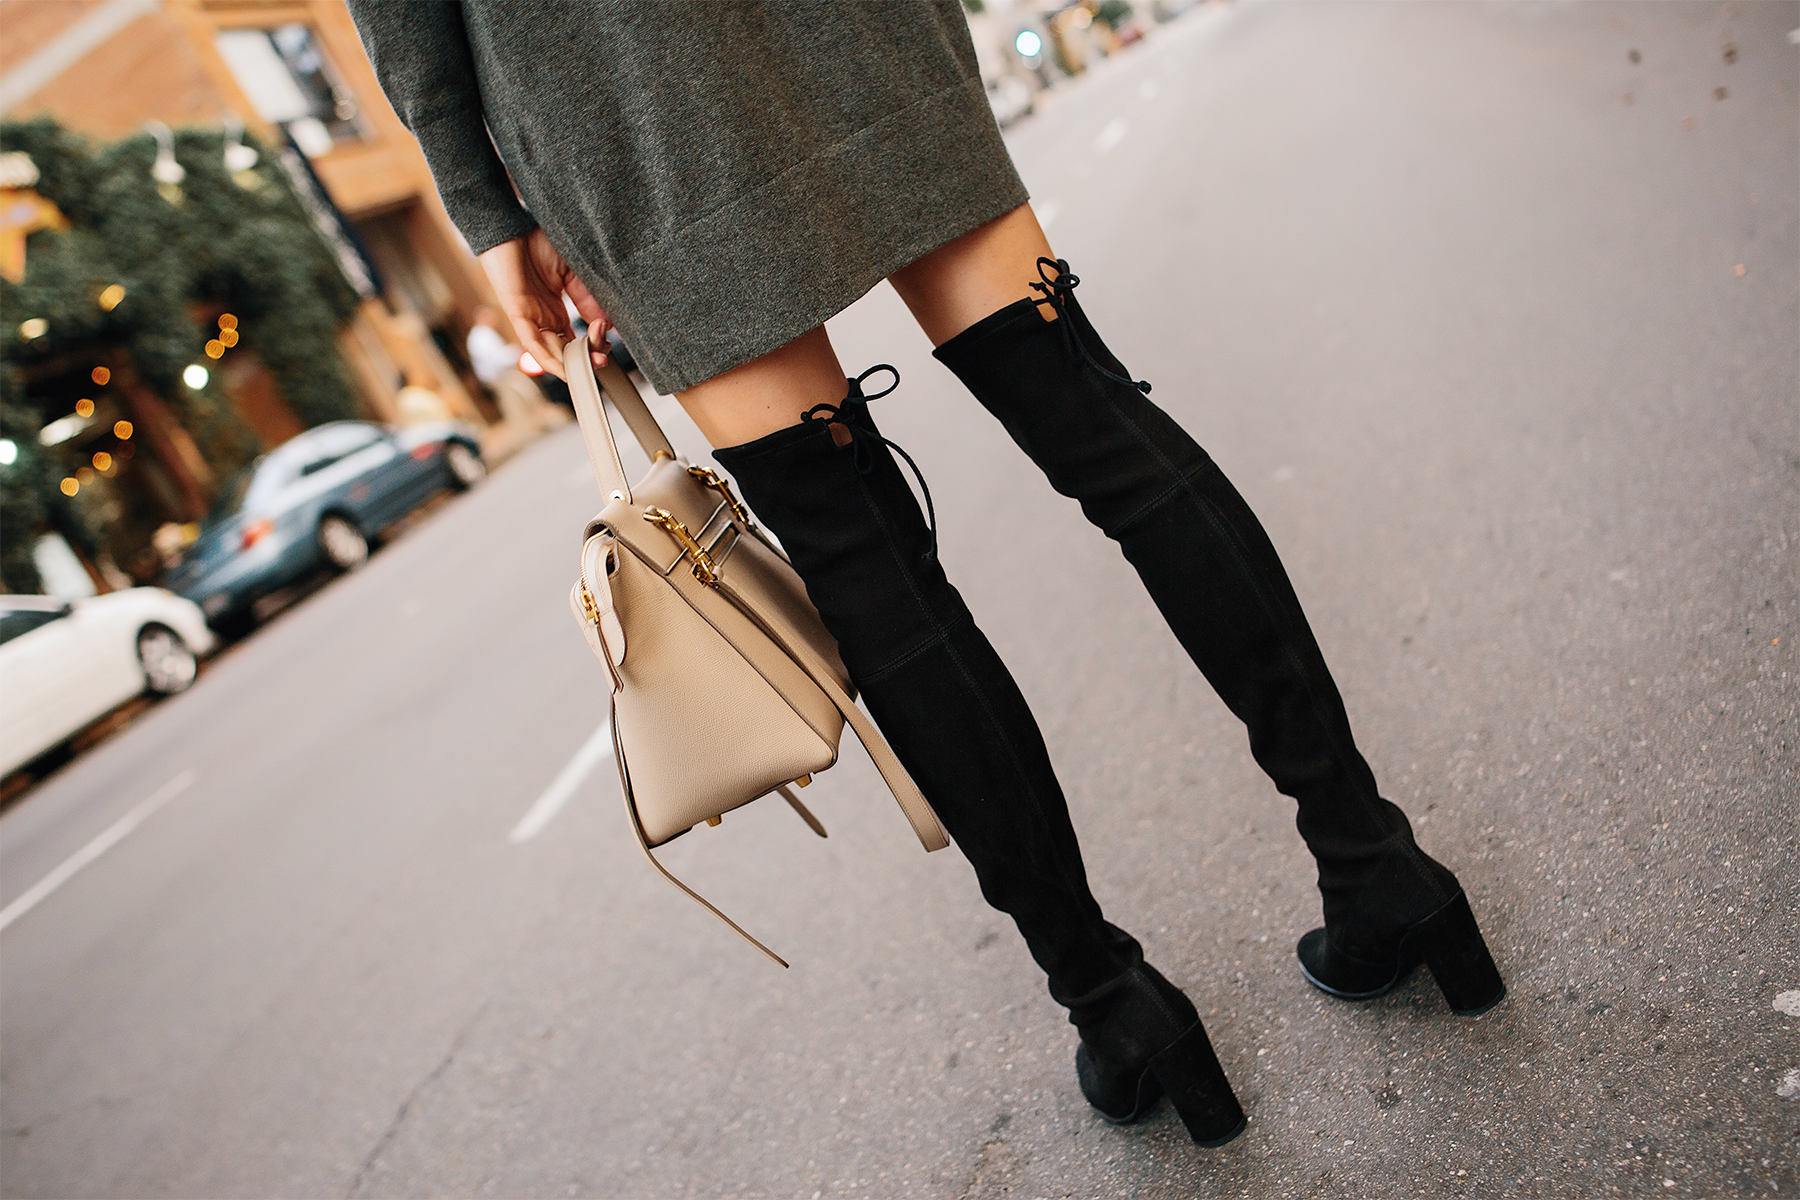 Woman Wearing Stuart Weitzman Black Over the Knee Boots Sweater Dress Fashion Jackson San Diego Fashion Blogger Street Style